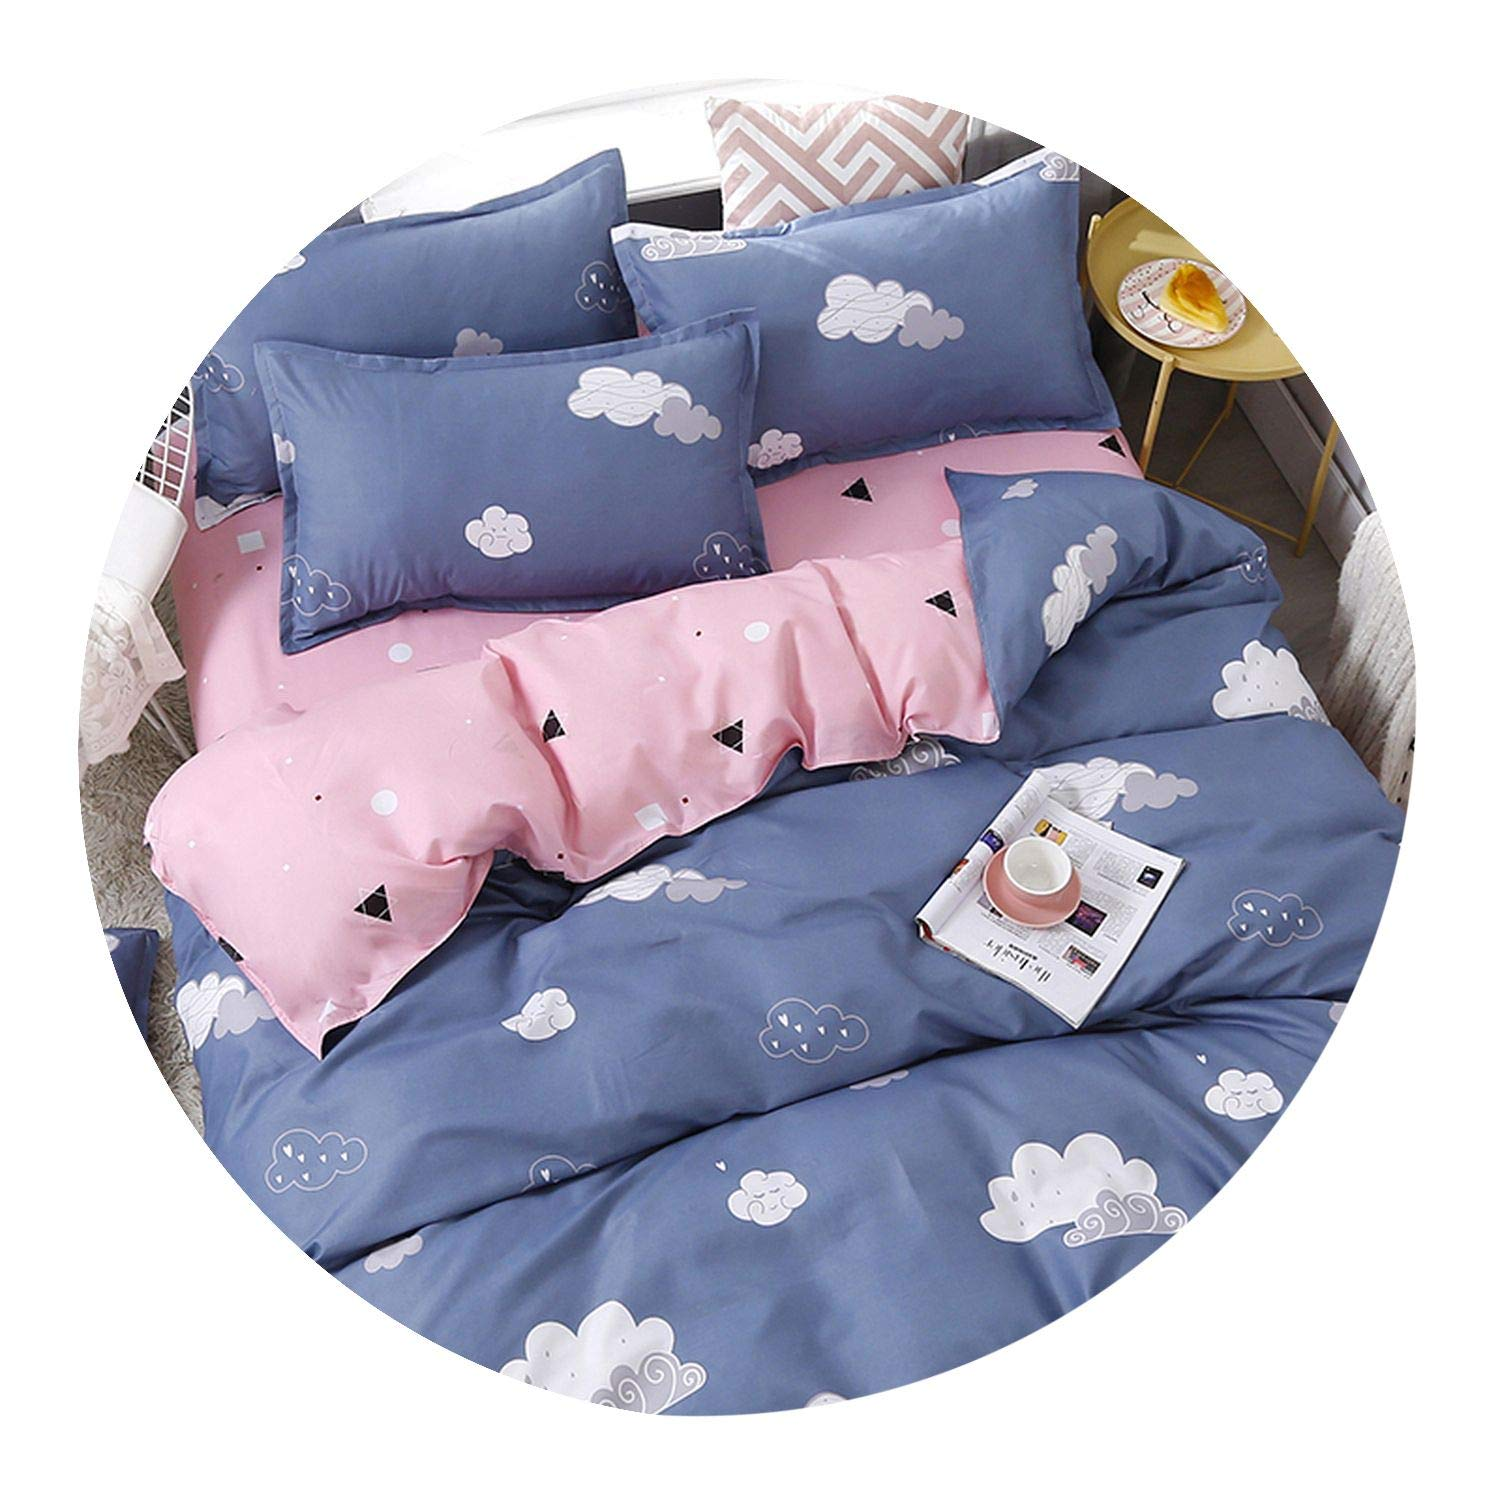 3/4pcs/set Brief Cloud Printing Textile Bedding Set Include Duvet Cover &Sheets&Pillowcases Cover Comfortable Home Bed Set,for 2.2m Width Bed